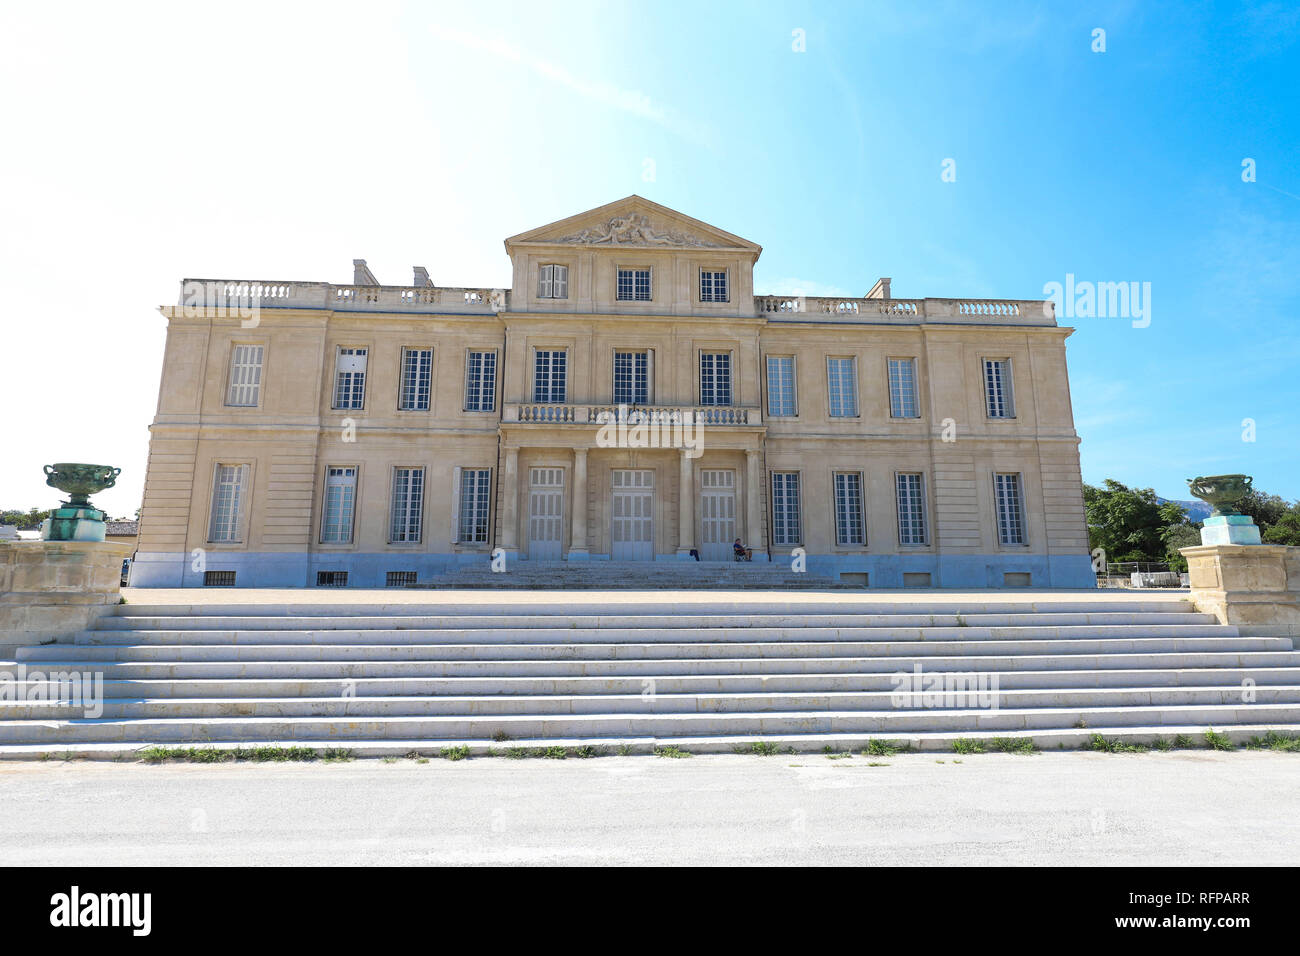 The Borely castle, a large eighteenth-century mansion located in the Borely public park, houses the Museum of Decorative Arts, Faience and Fashion . - Stock Image